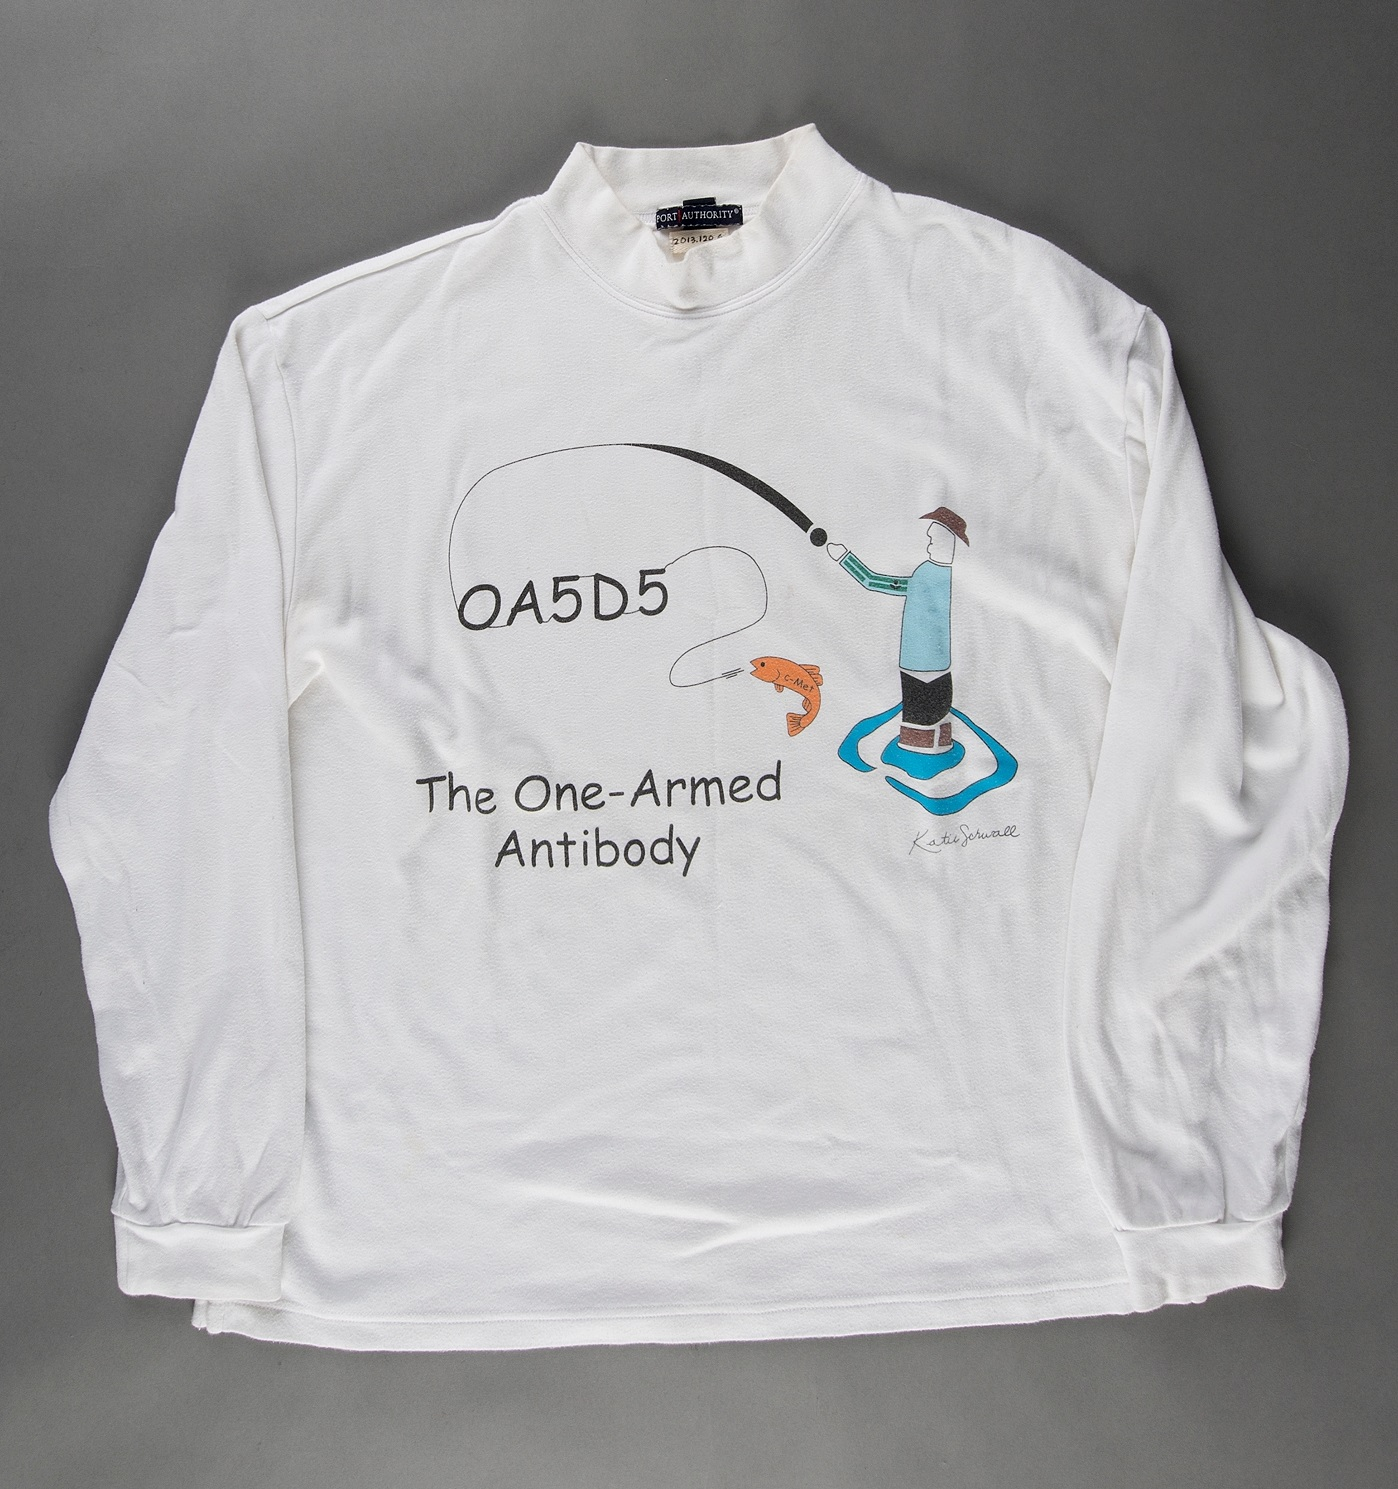 1e721e3f Juxtaposed image of a long-sleeved white tshirt with an illustration on the  chest and